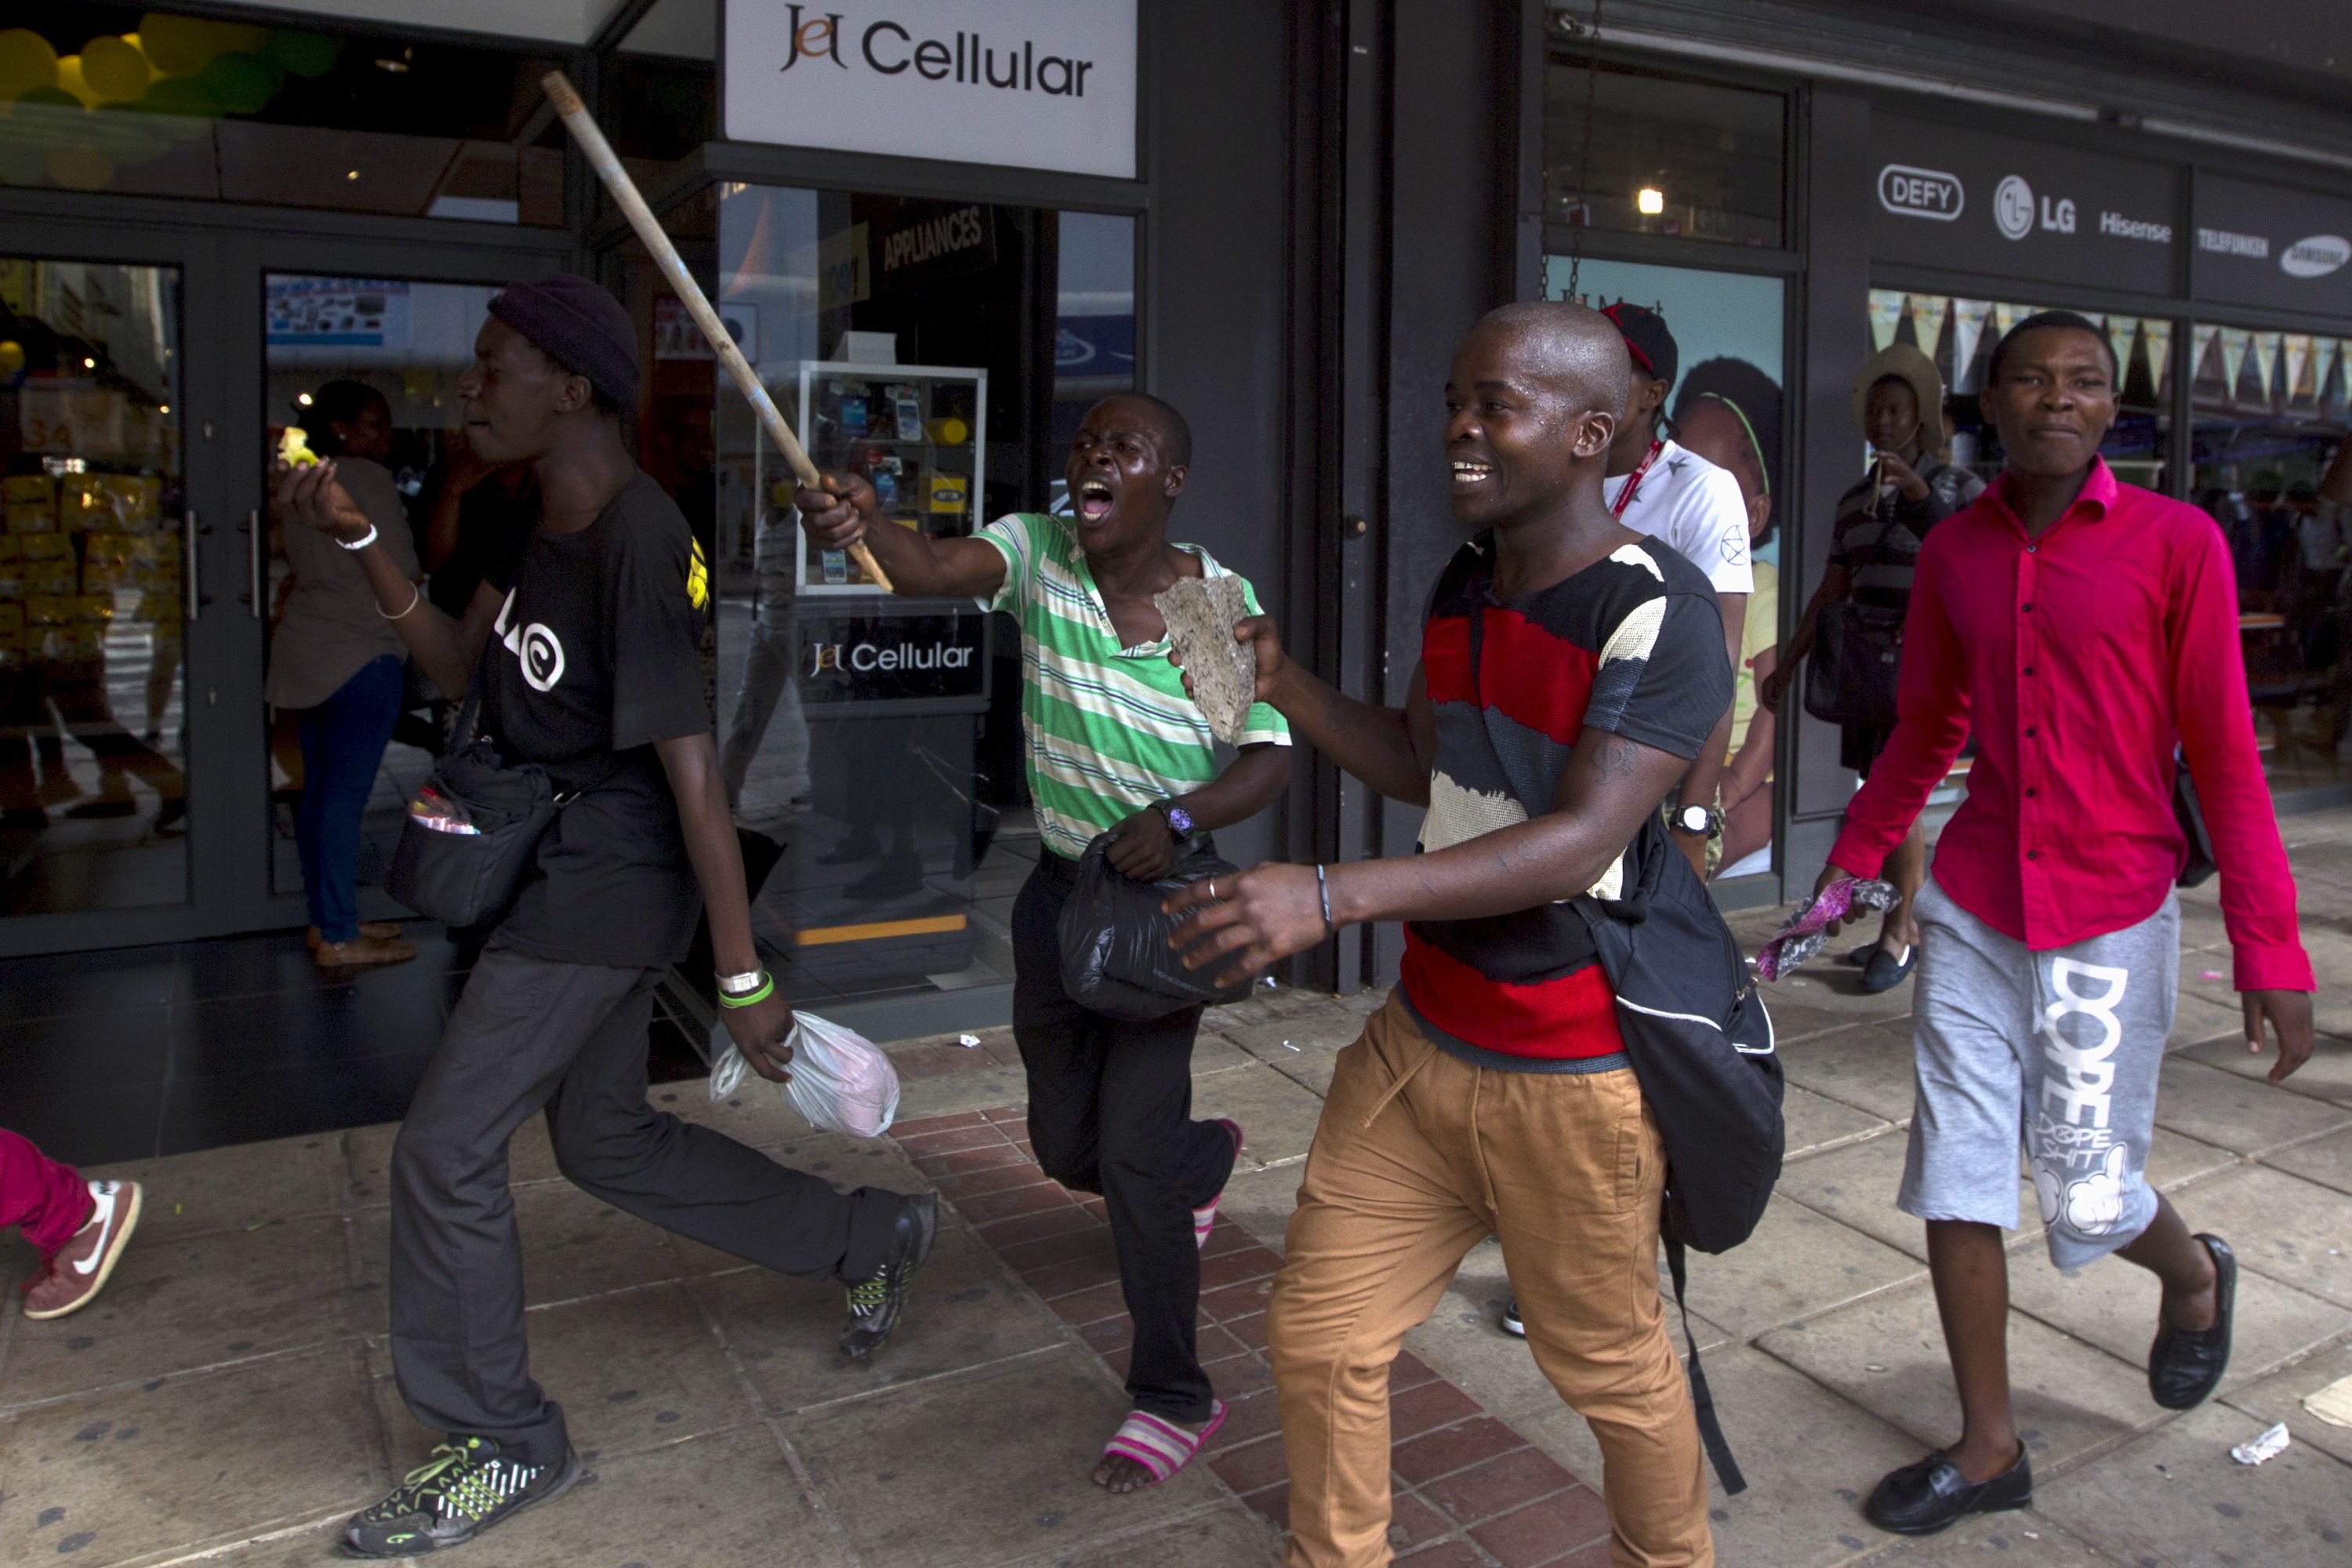 South African men run from police